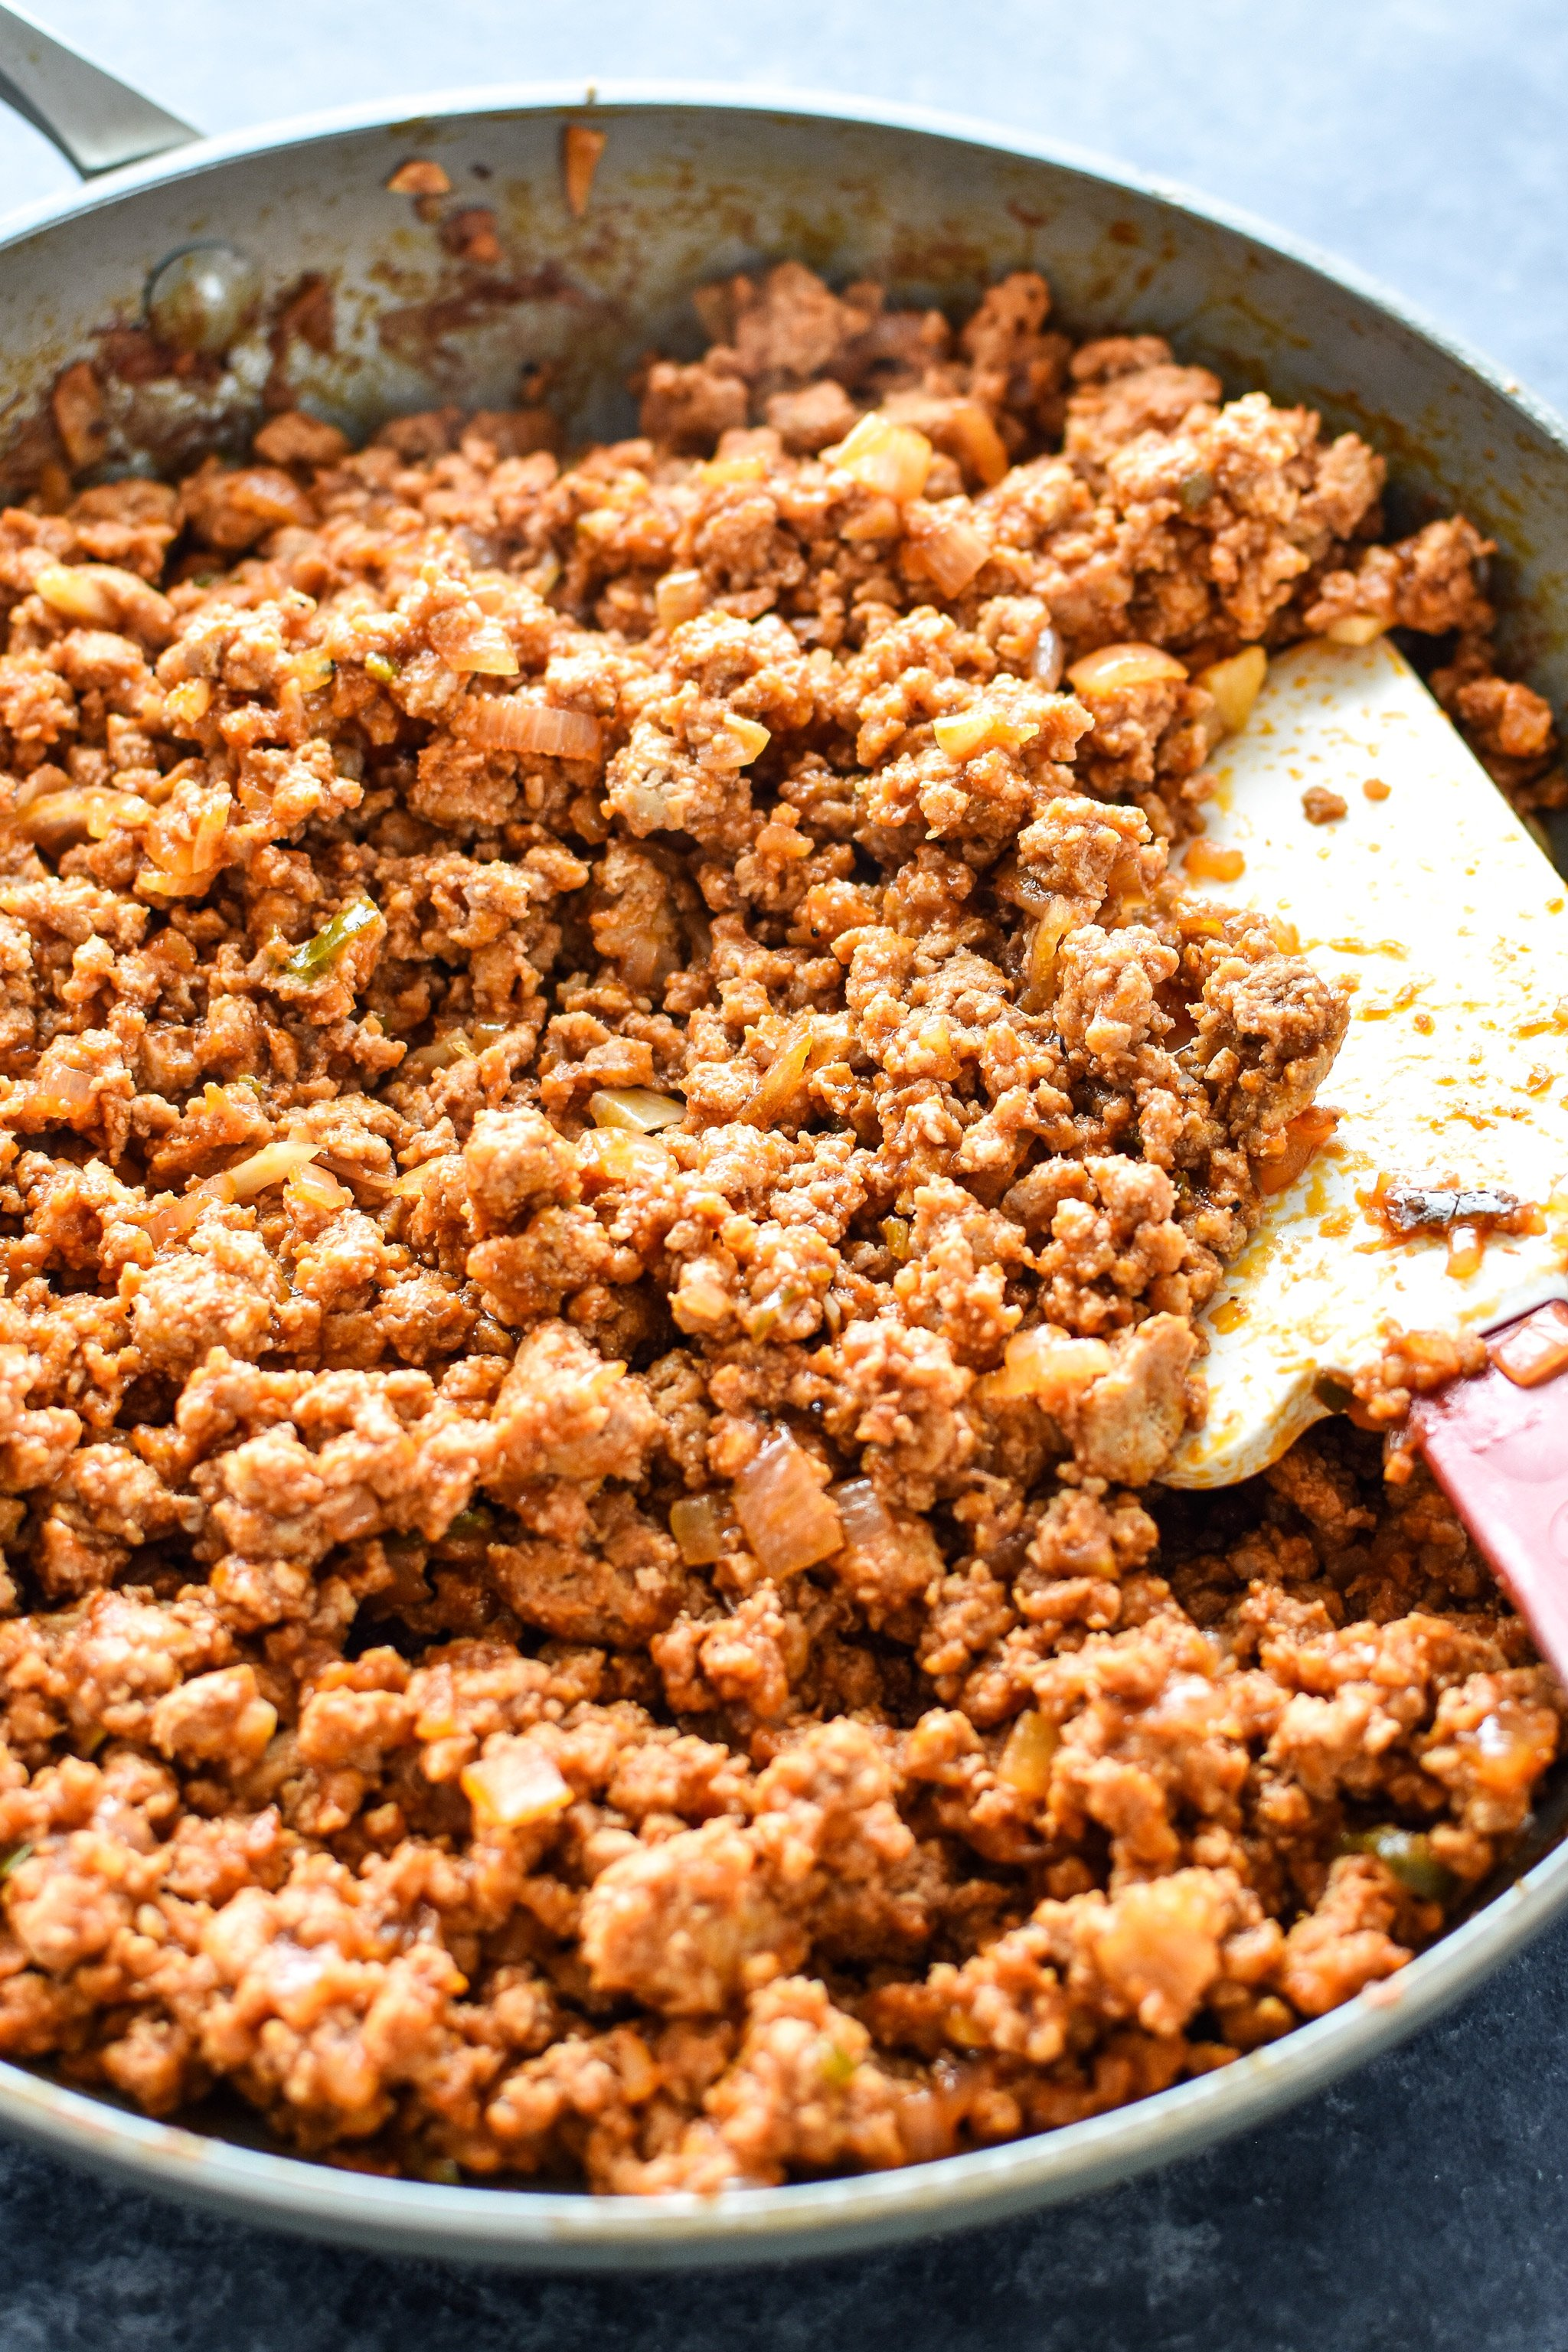 A big skillet full of homemade ground turkey sloppy joes done cooking.